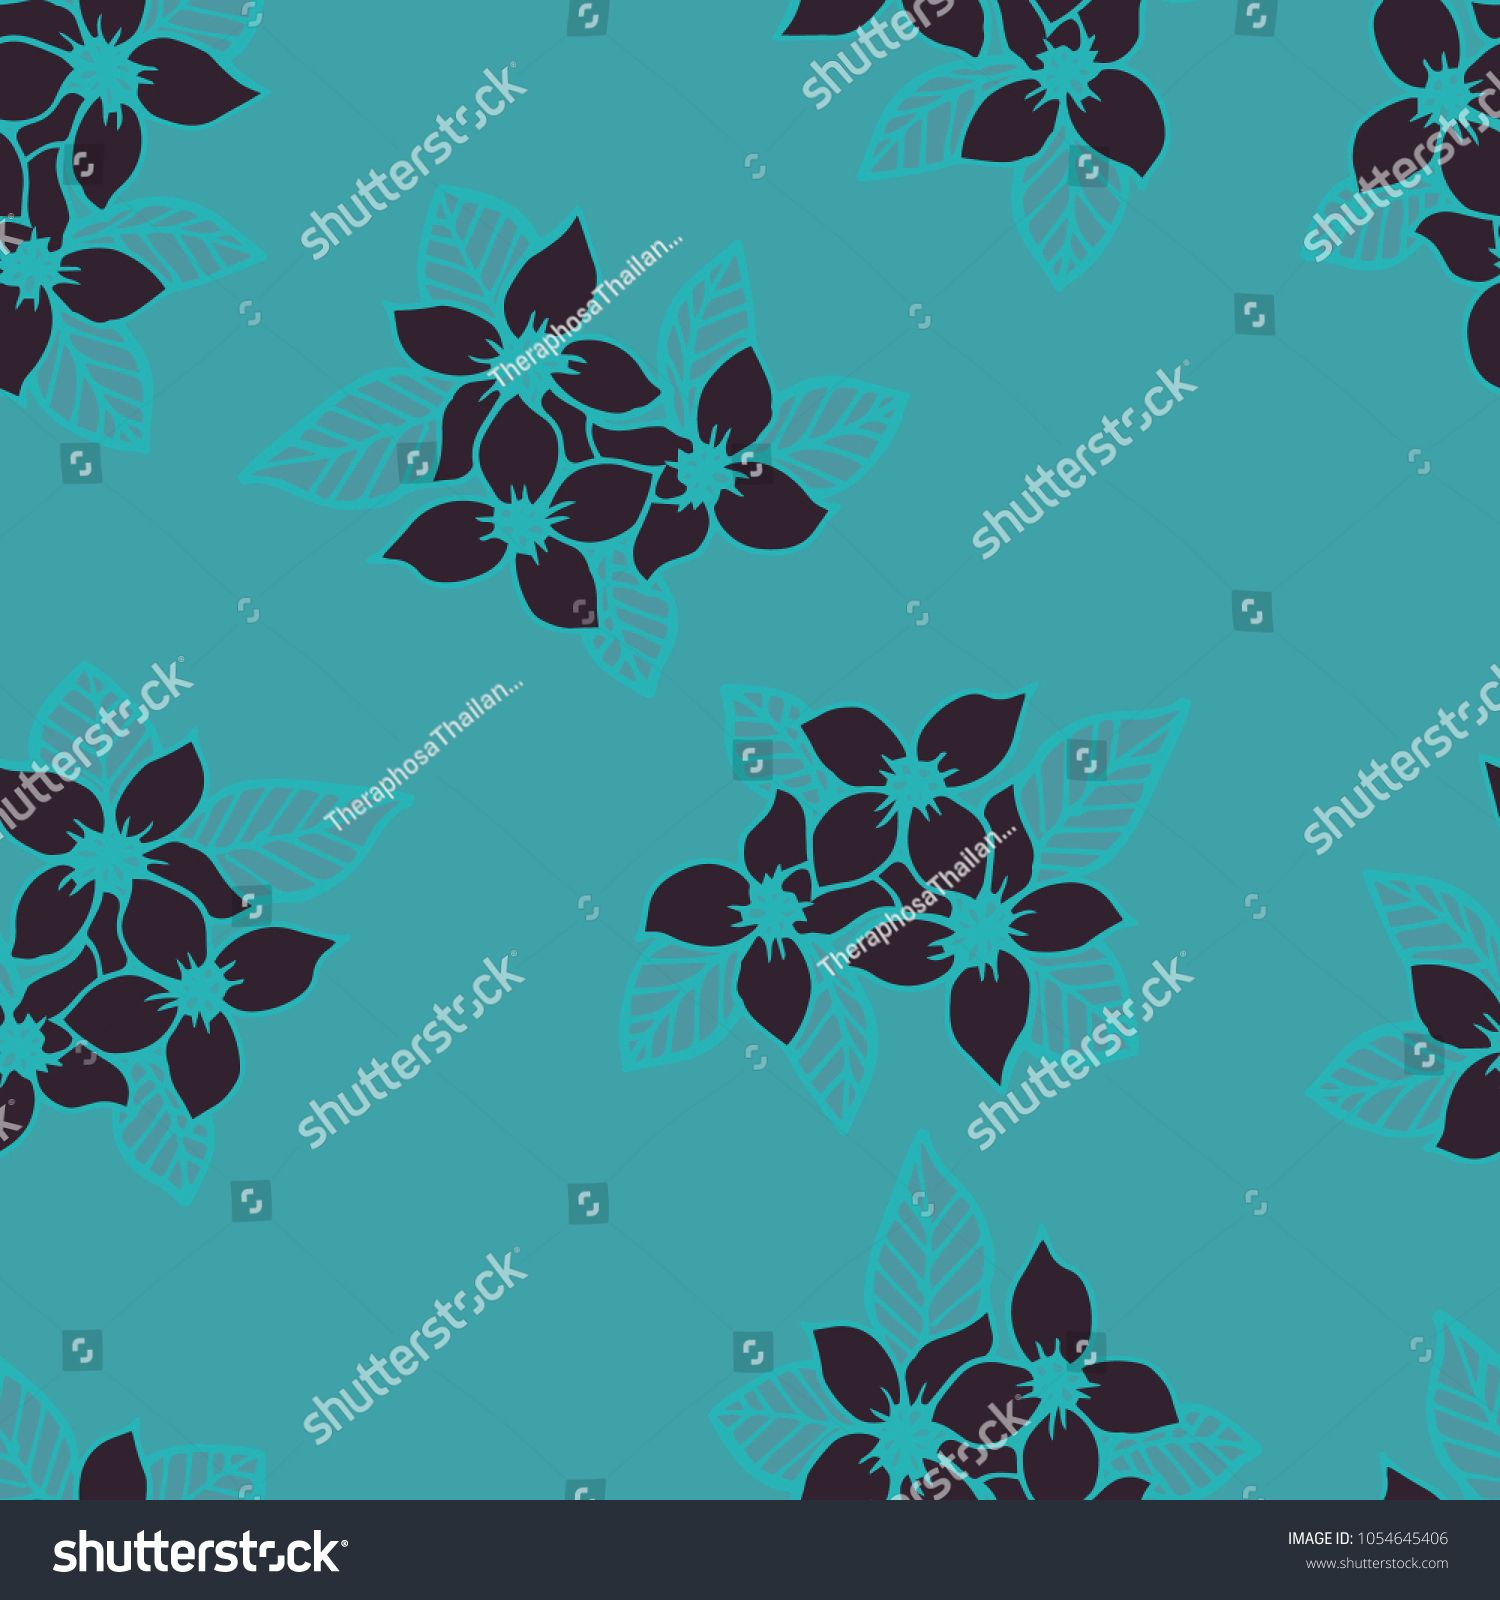 Abstract elegance pattern with floral background.\n #Sponsored , #affiliate, #elegance#Abstract#pattern#background